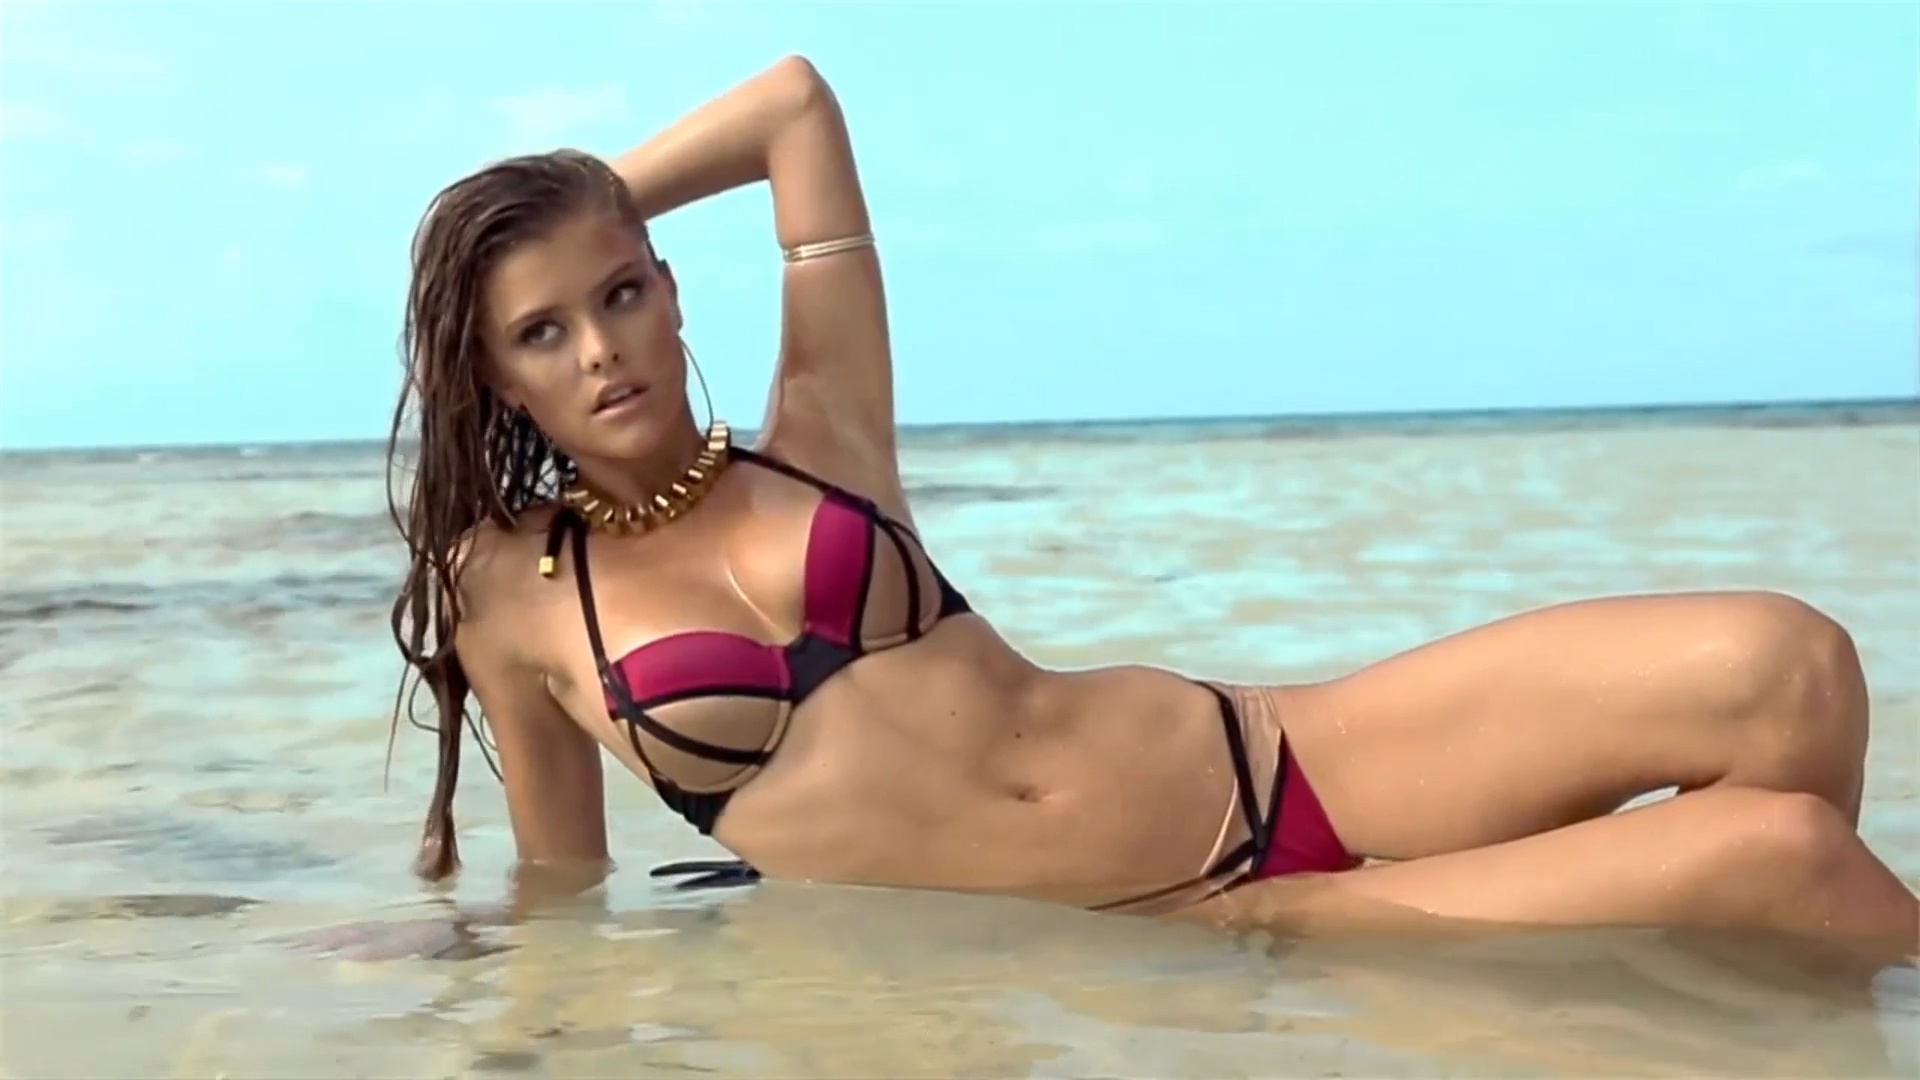 bombshell-nina-agdal-for-beach-bunny-swimwear-2014